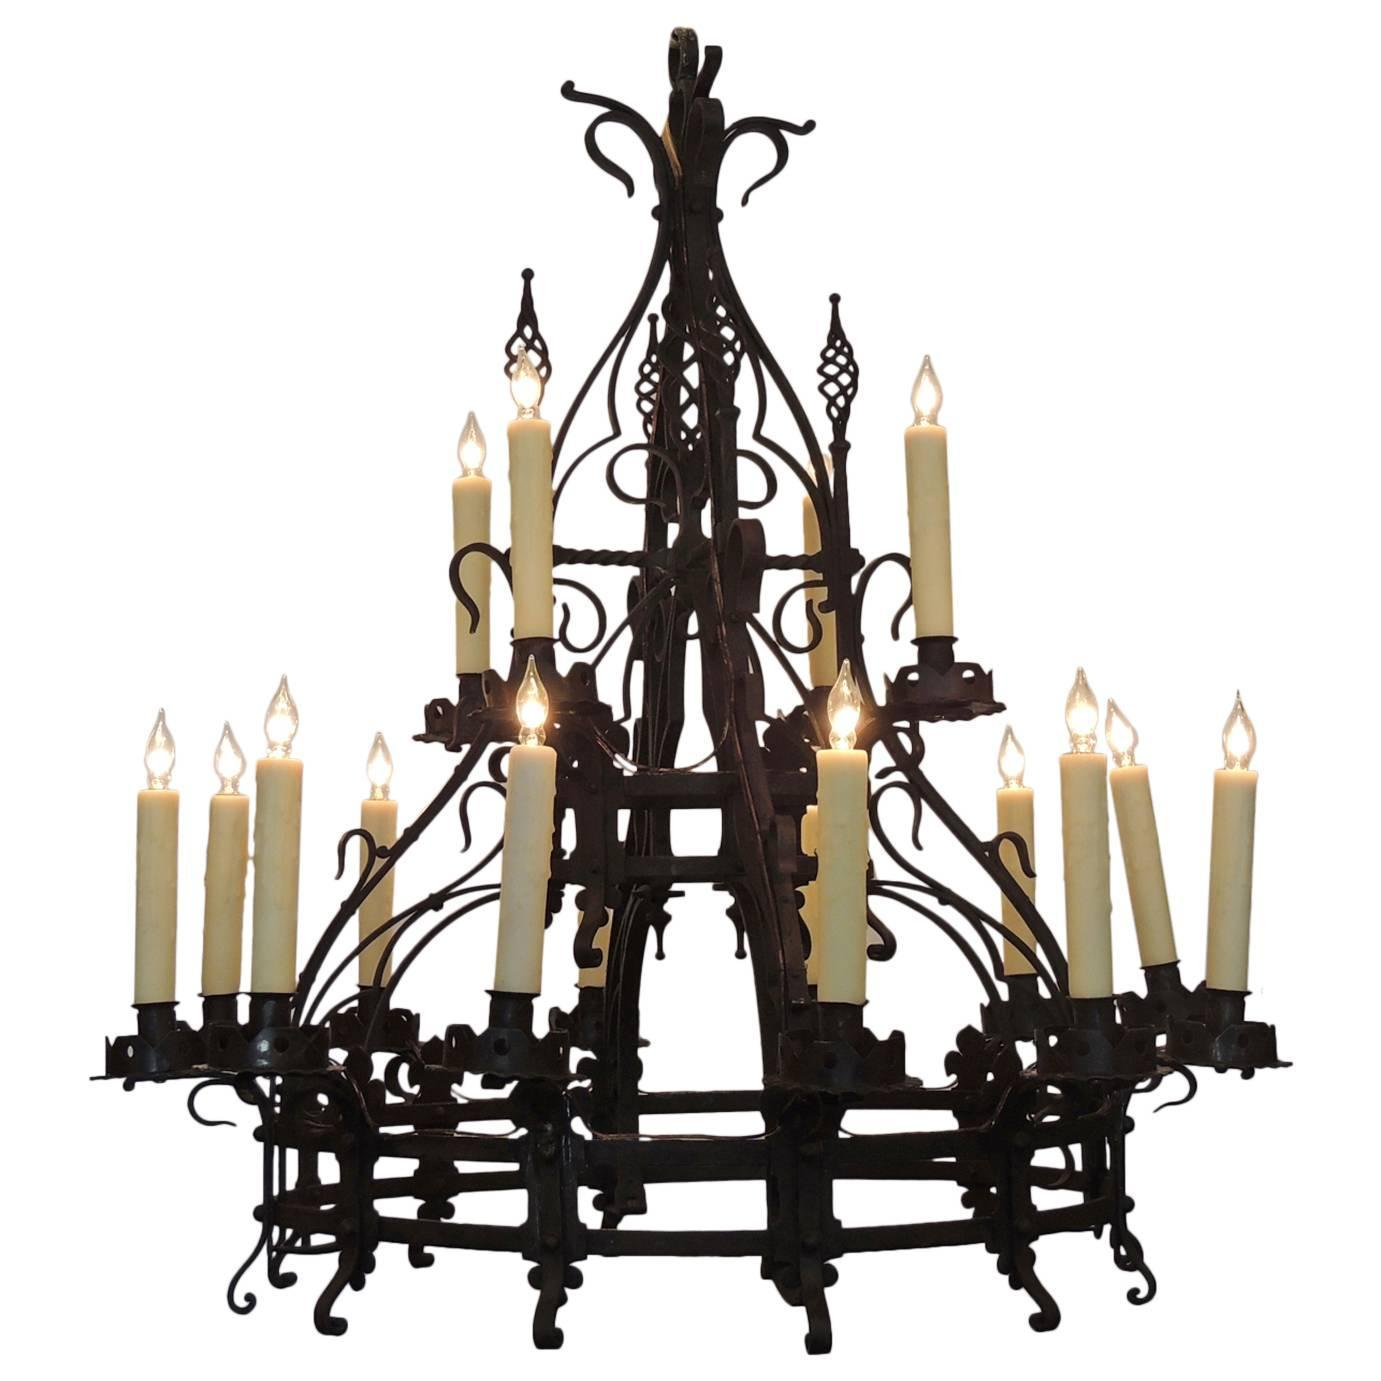 Enticing Gothic Chandelier Designs | Astounding Mexican Wrought Iron Light Fixtures